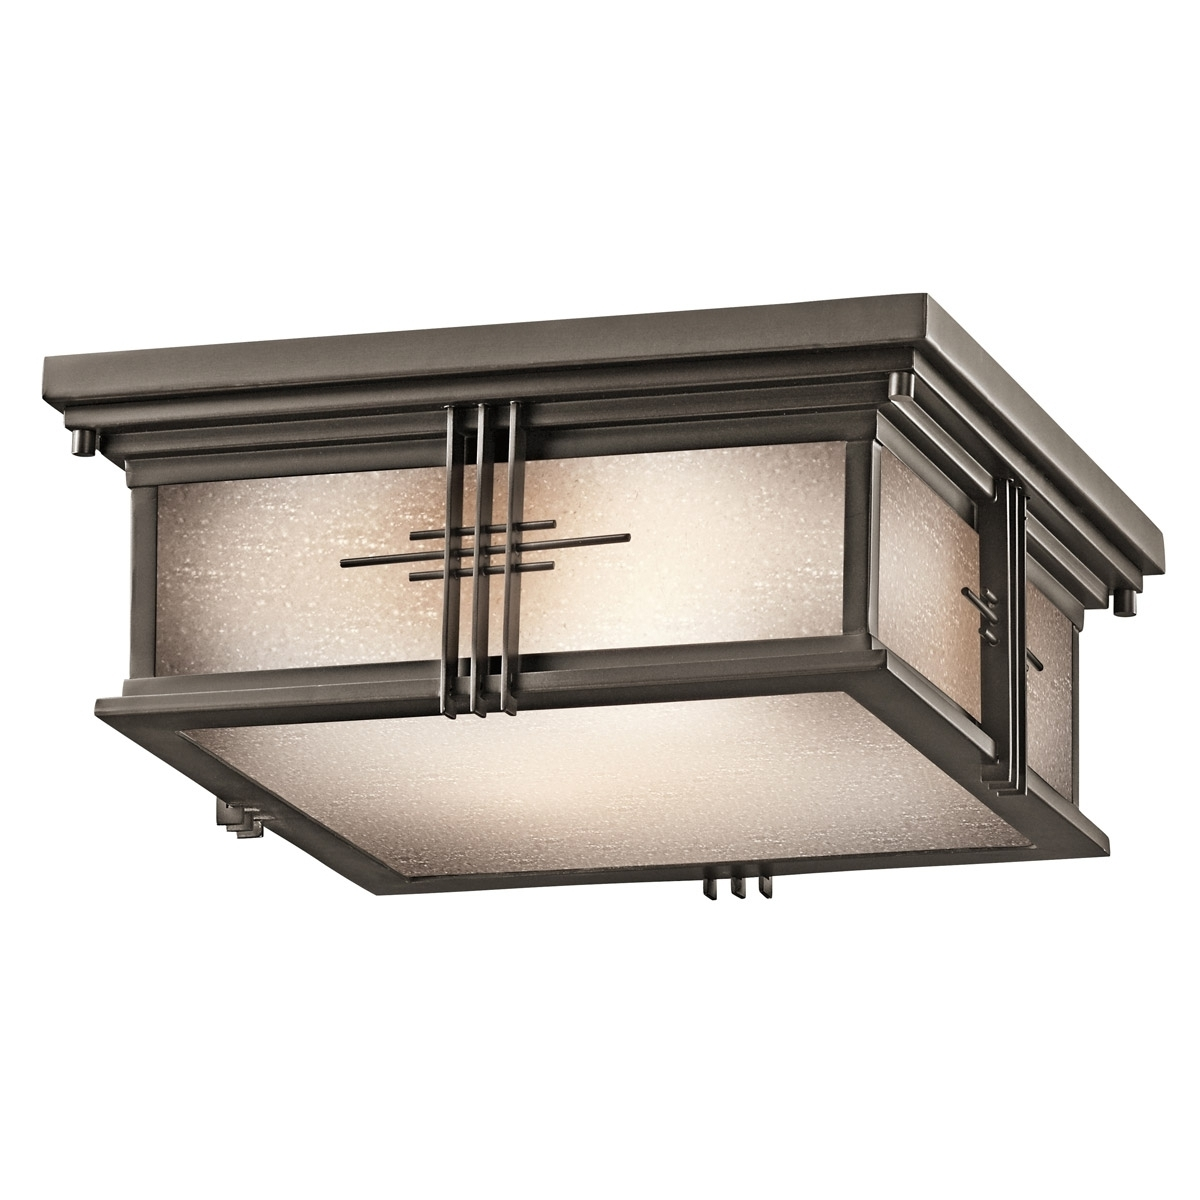 Well Known Craftsman Style Outdoor Ceiling Lights Inside Mission Style Outdoor Ceiling Lights • Outdoor Lighting (View 6 of 20)